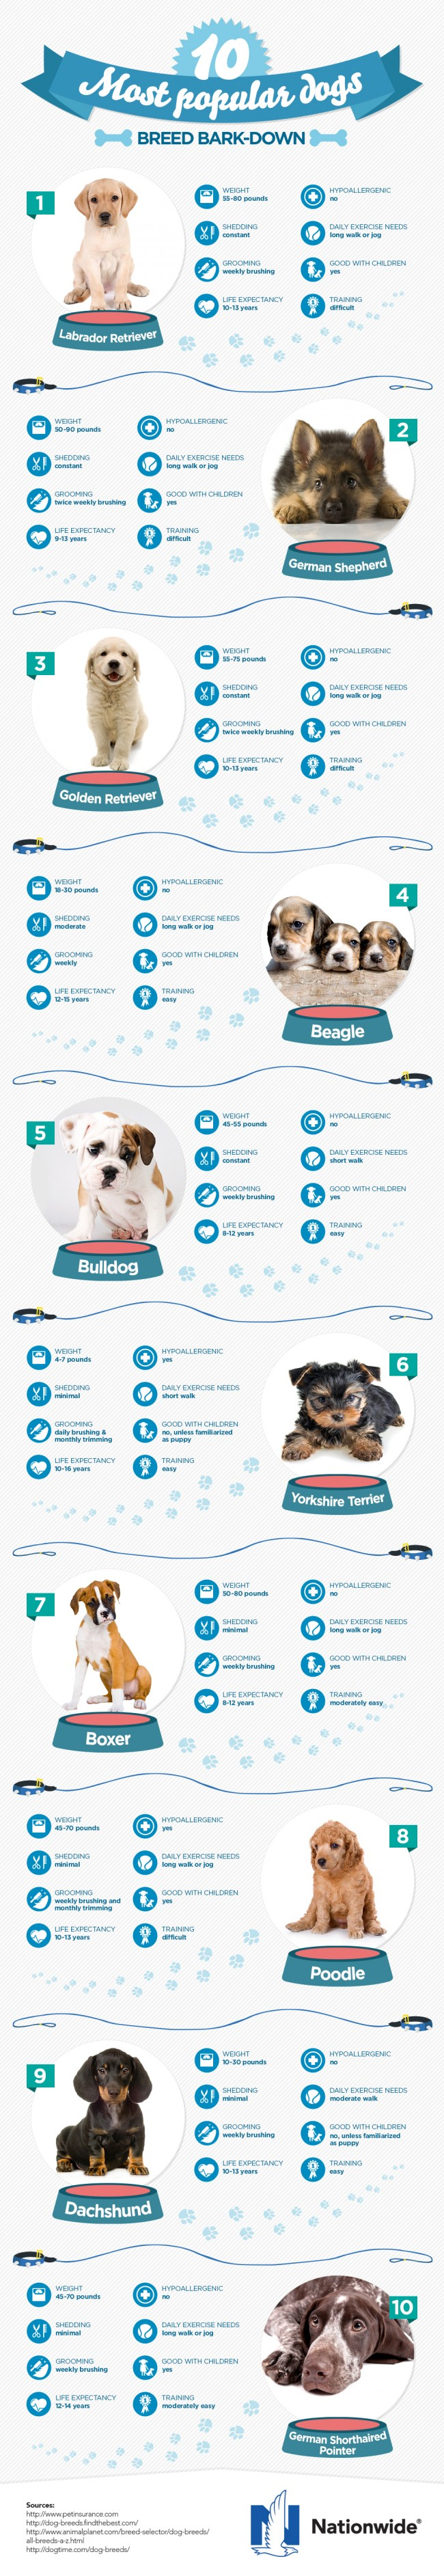 know the 10 most popular dog breeds